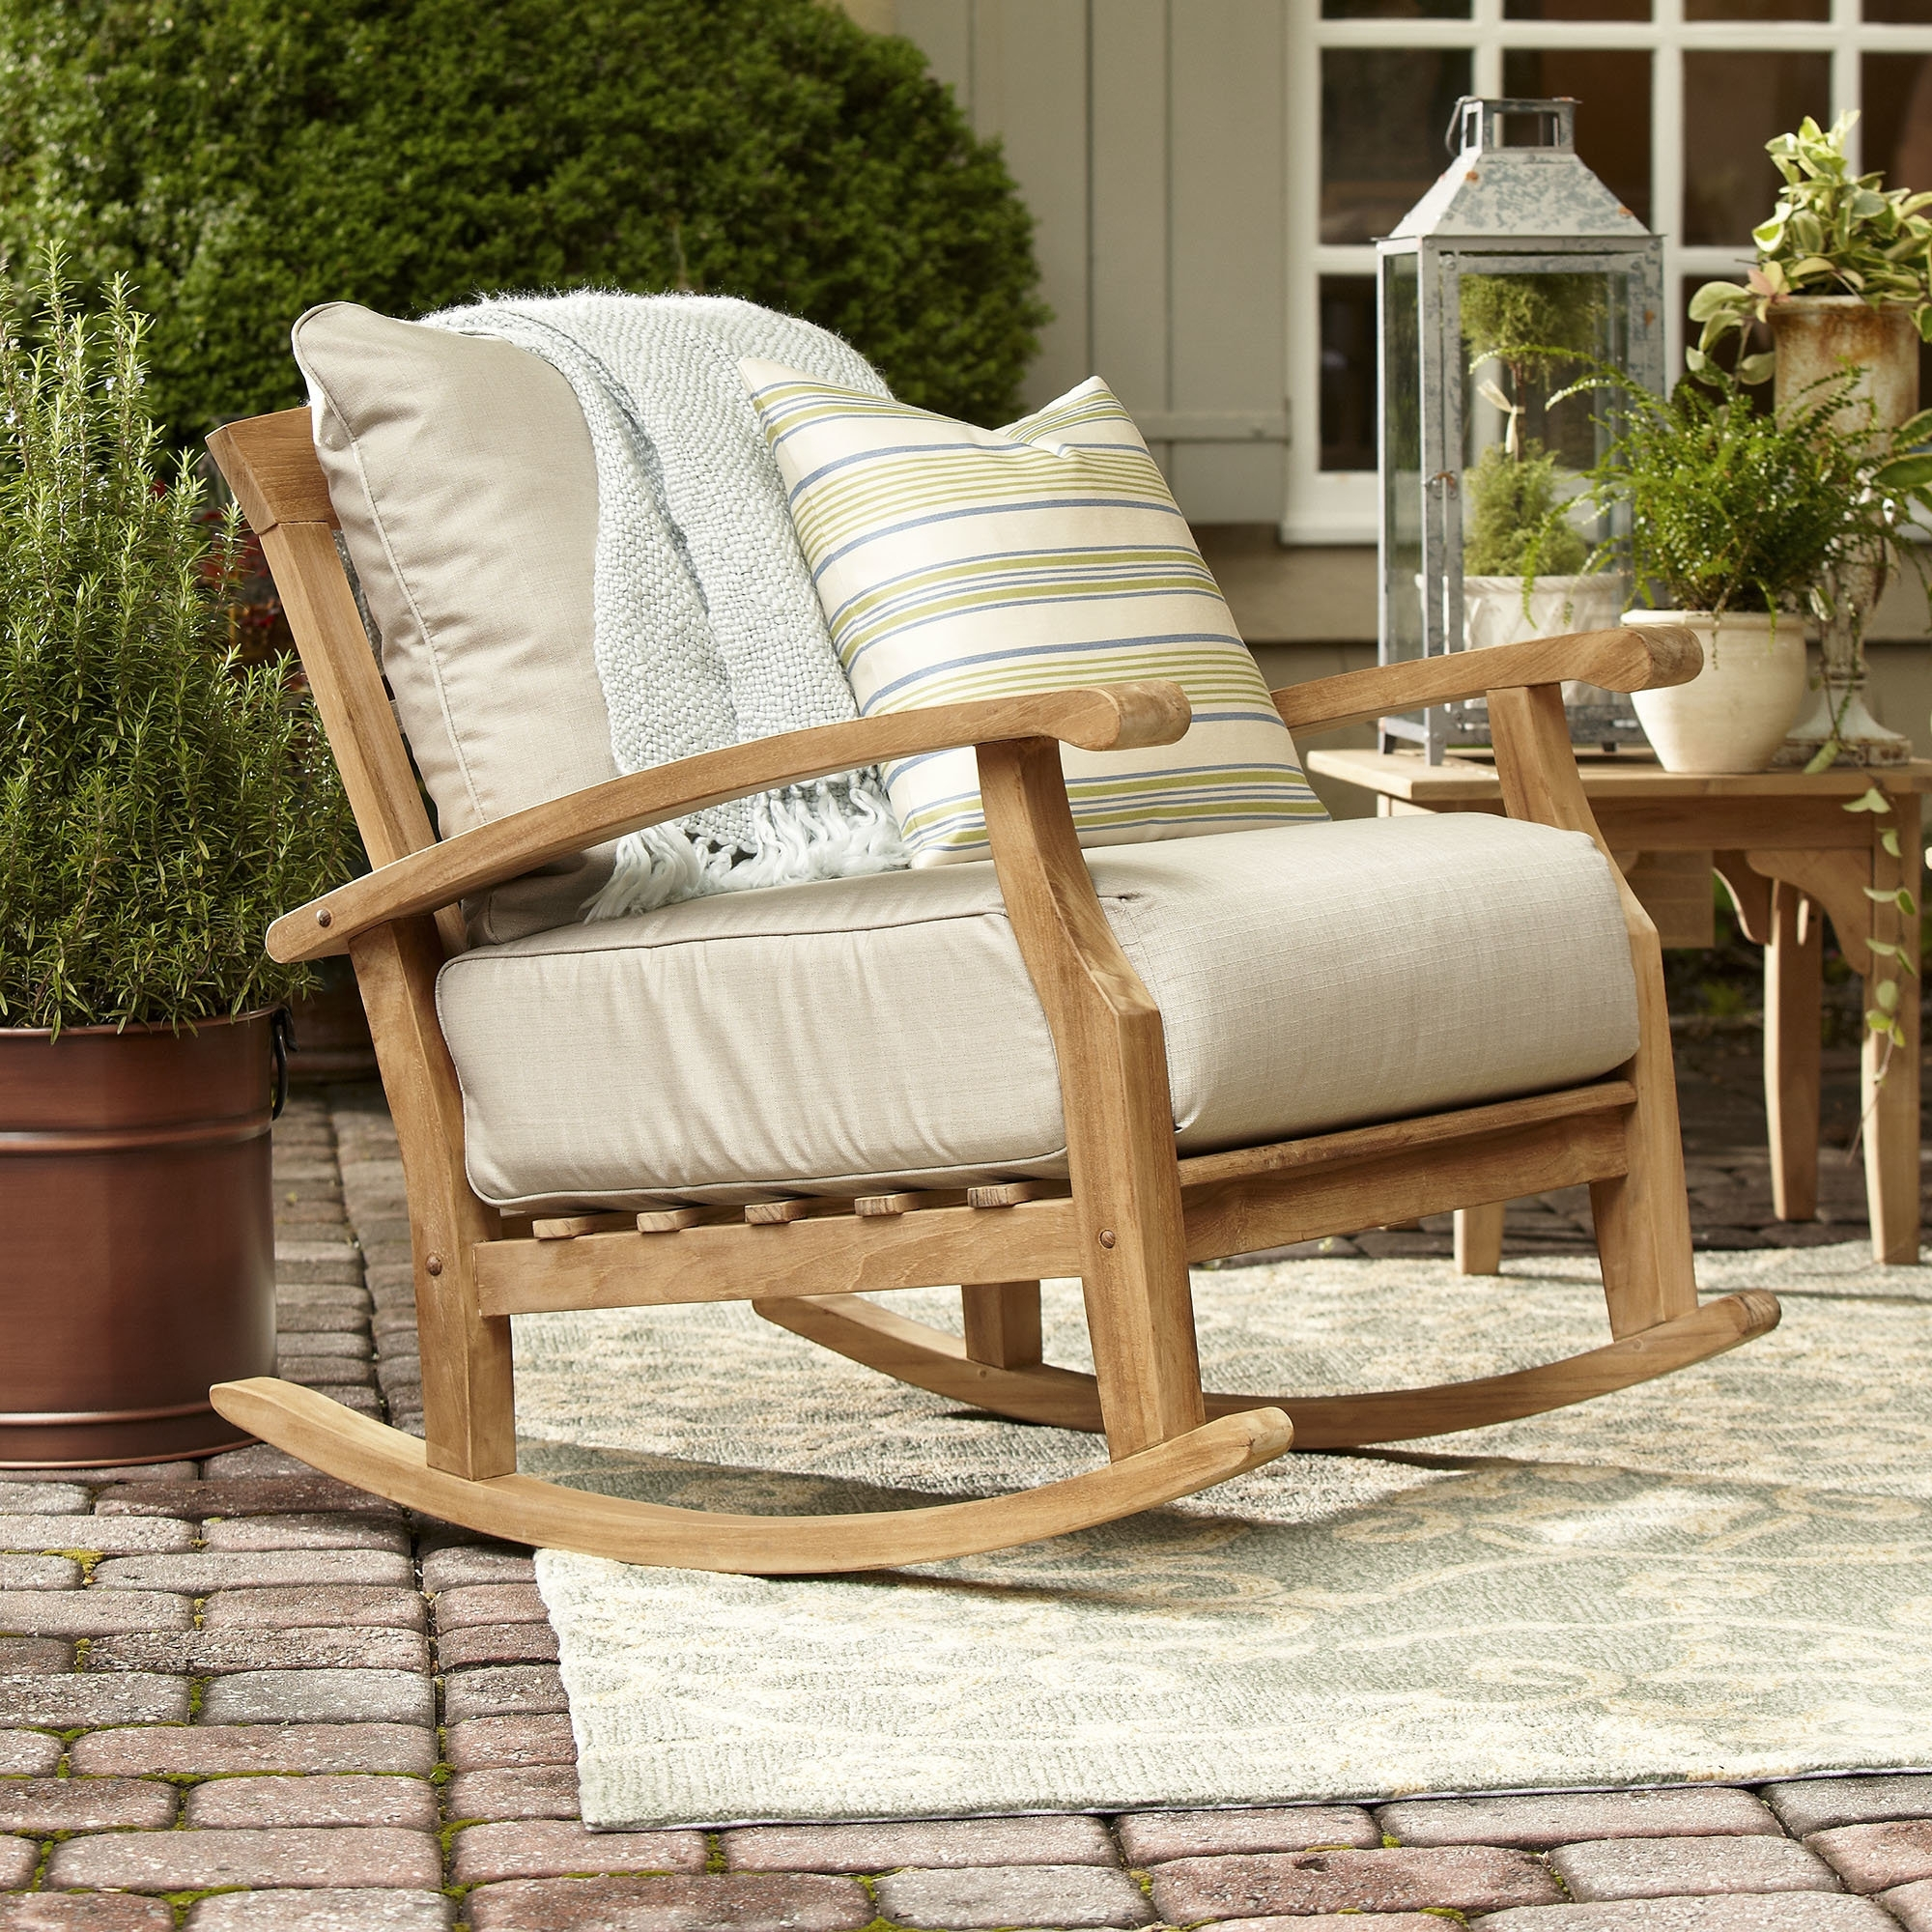 Birch Lane With Regard To Most Popular Teak Patio Rocking Chairs (View 7 of 15)